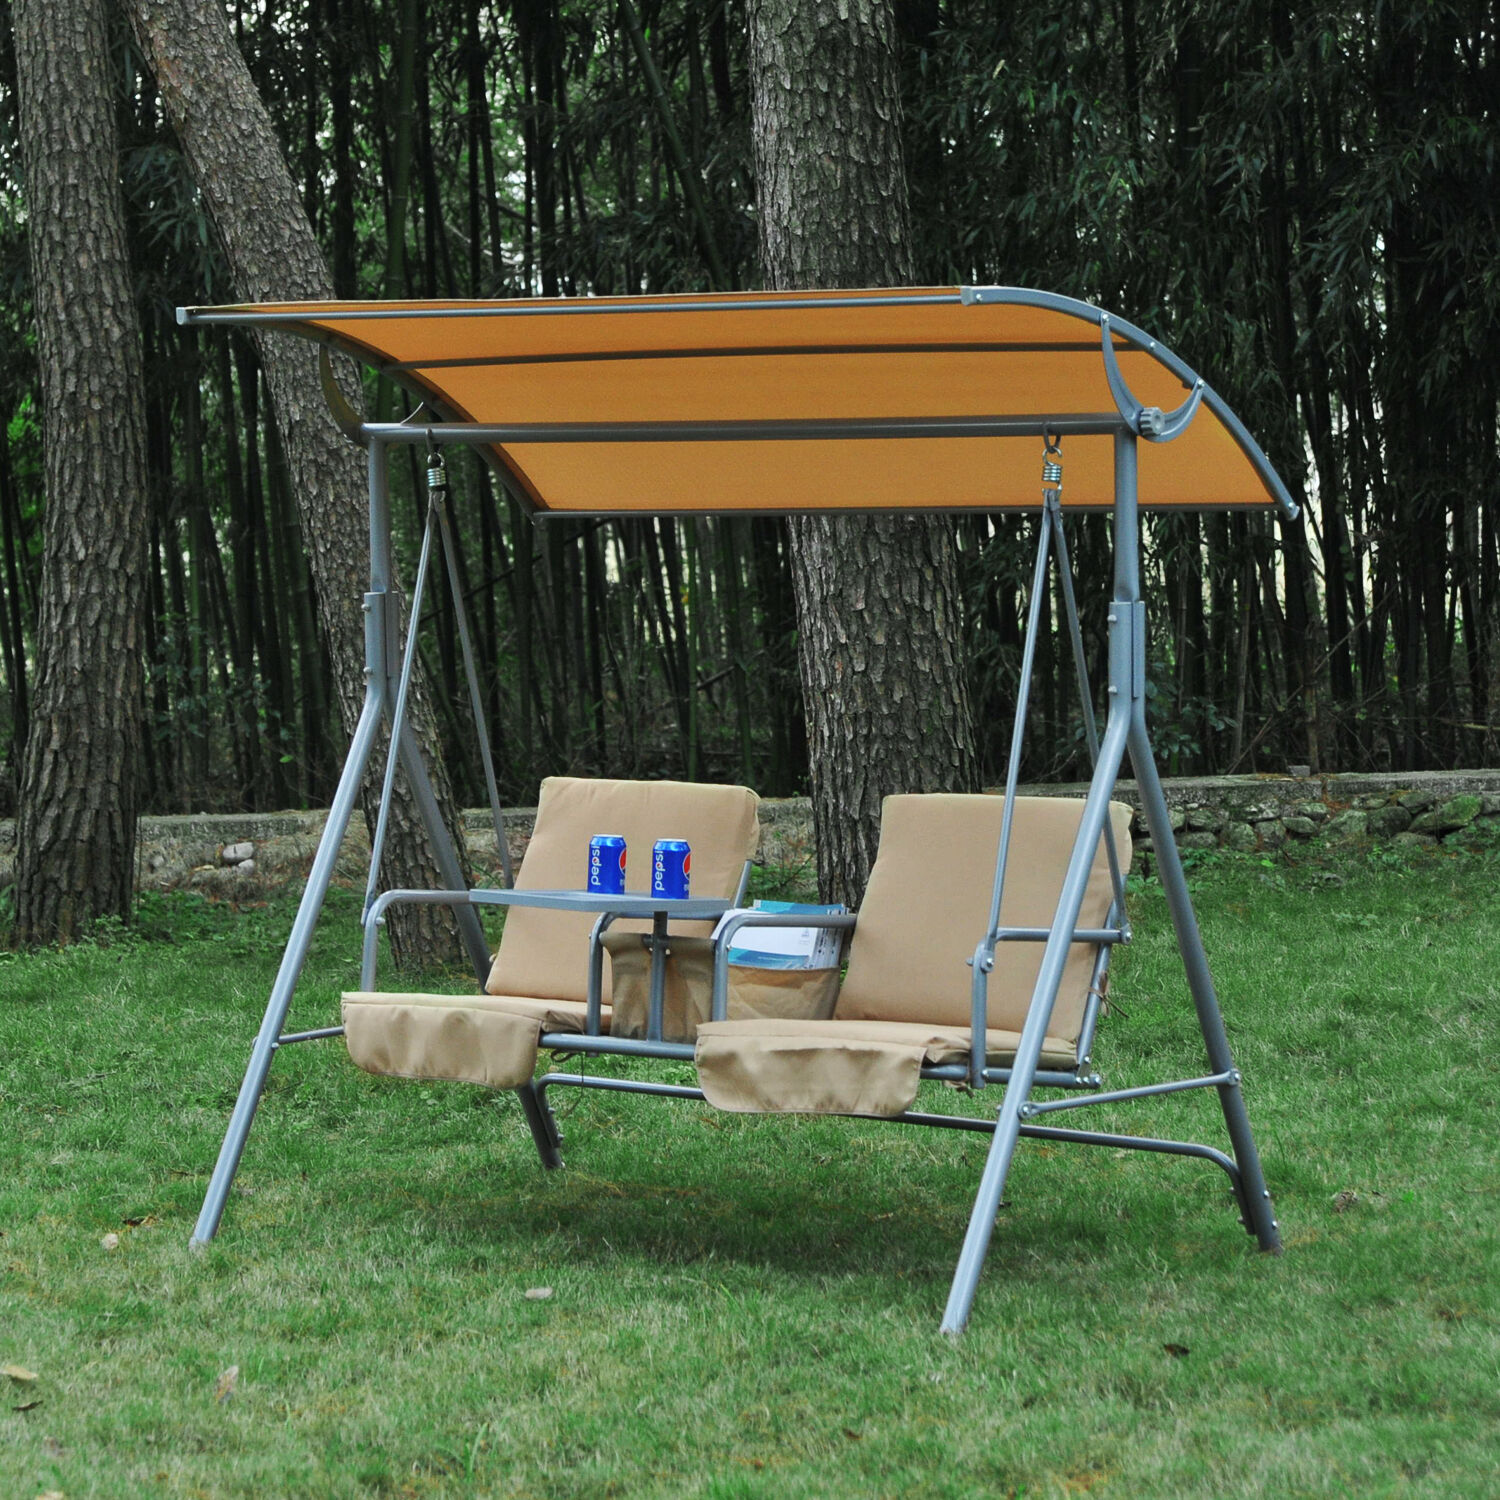 Outdoor Swing Chair Canopy Patio Garden Hanging 2 Person Yard Porch